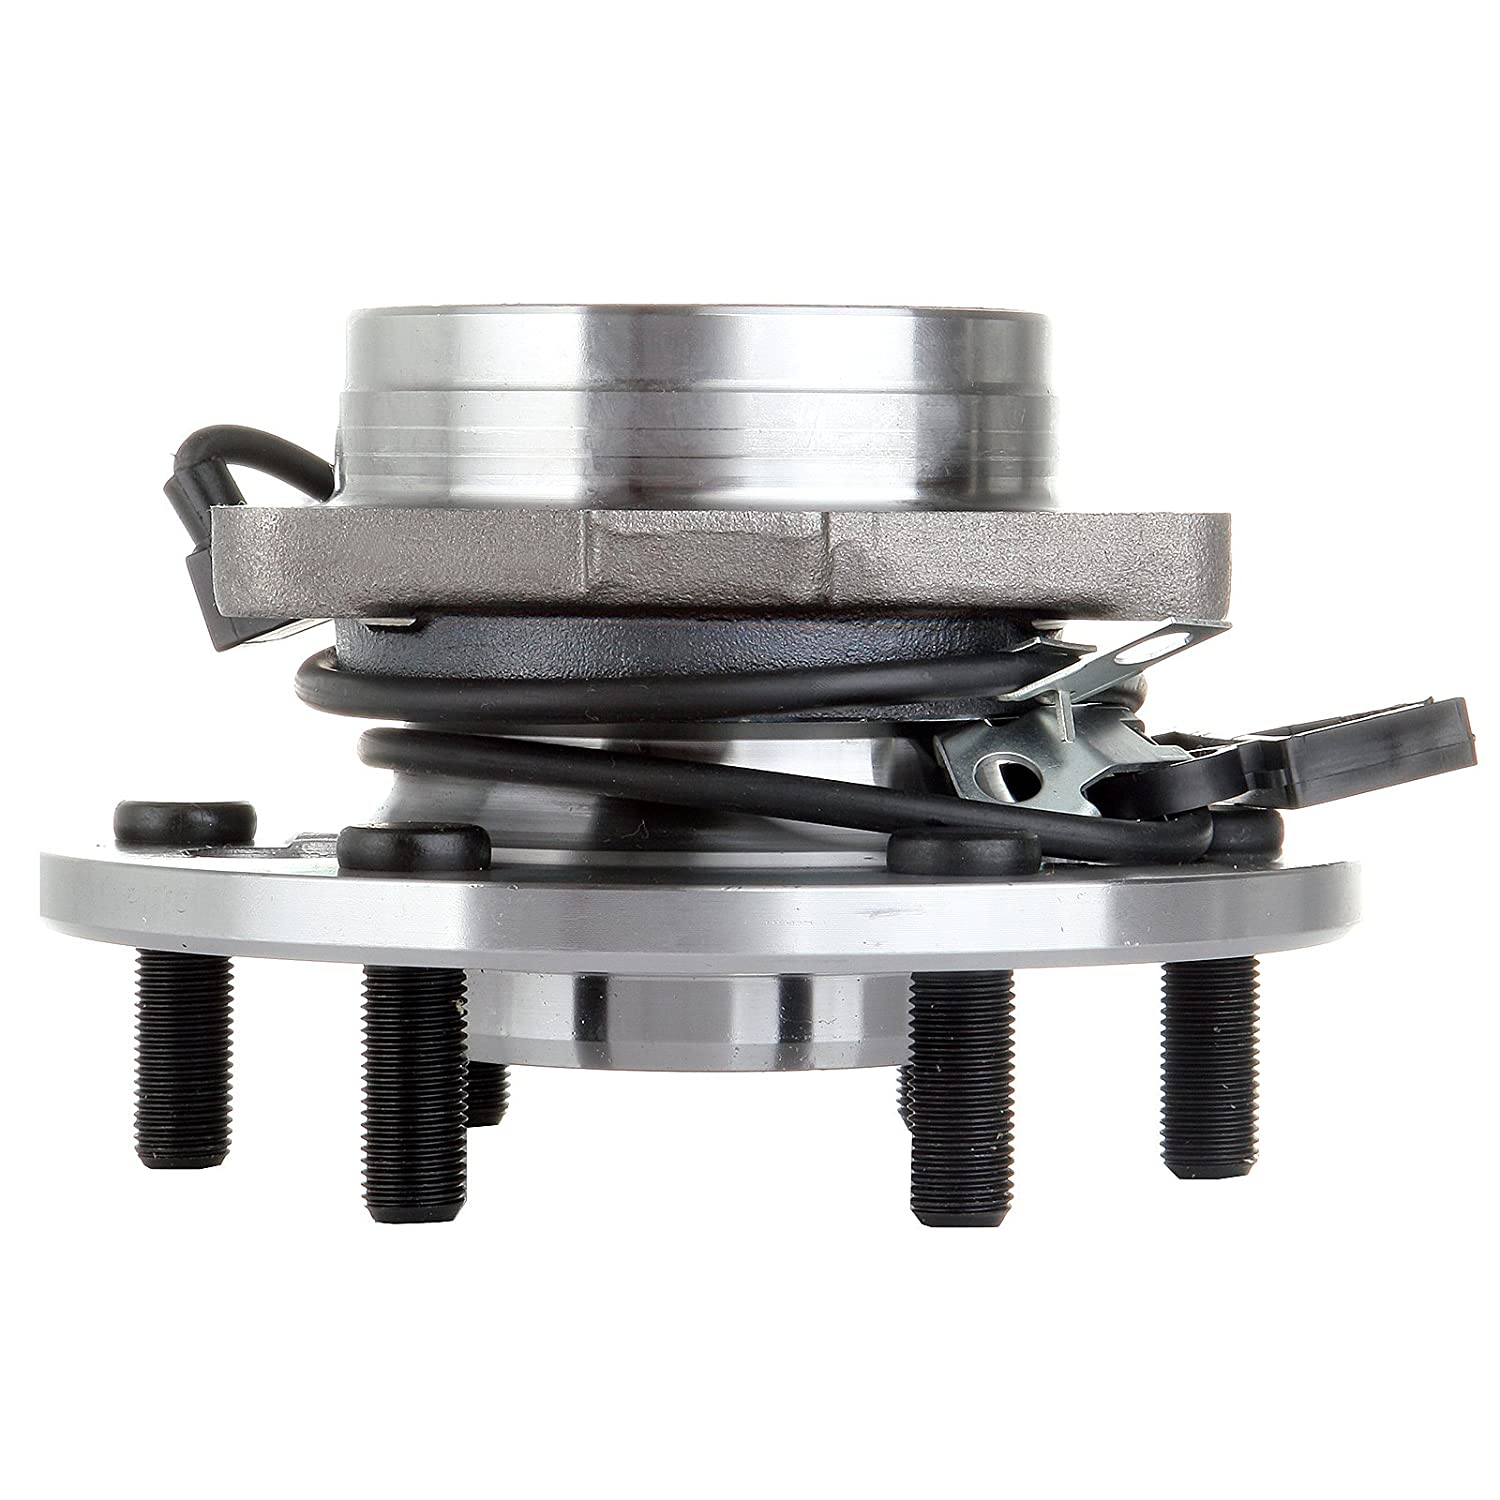 SCITOO Wheel Hub Bearing for Chevrolet Tahoe GMC Cadillac 1995-2000 Compatible for OE 515024 Front 6 Bolts W//ABS 051430-5206-1024057932